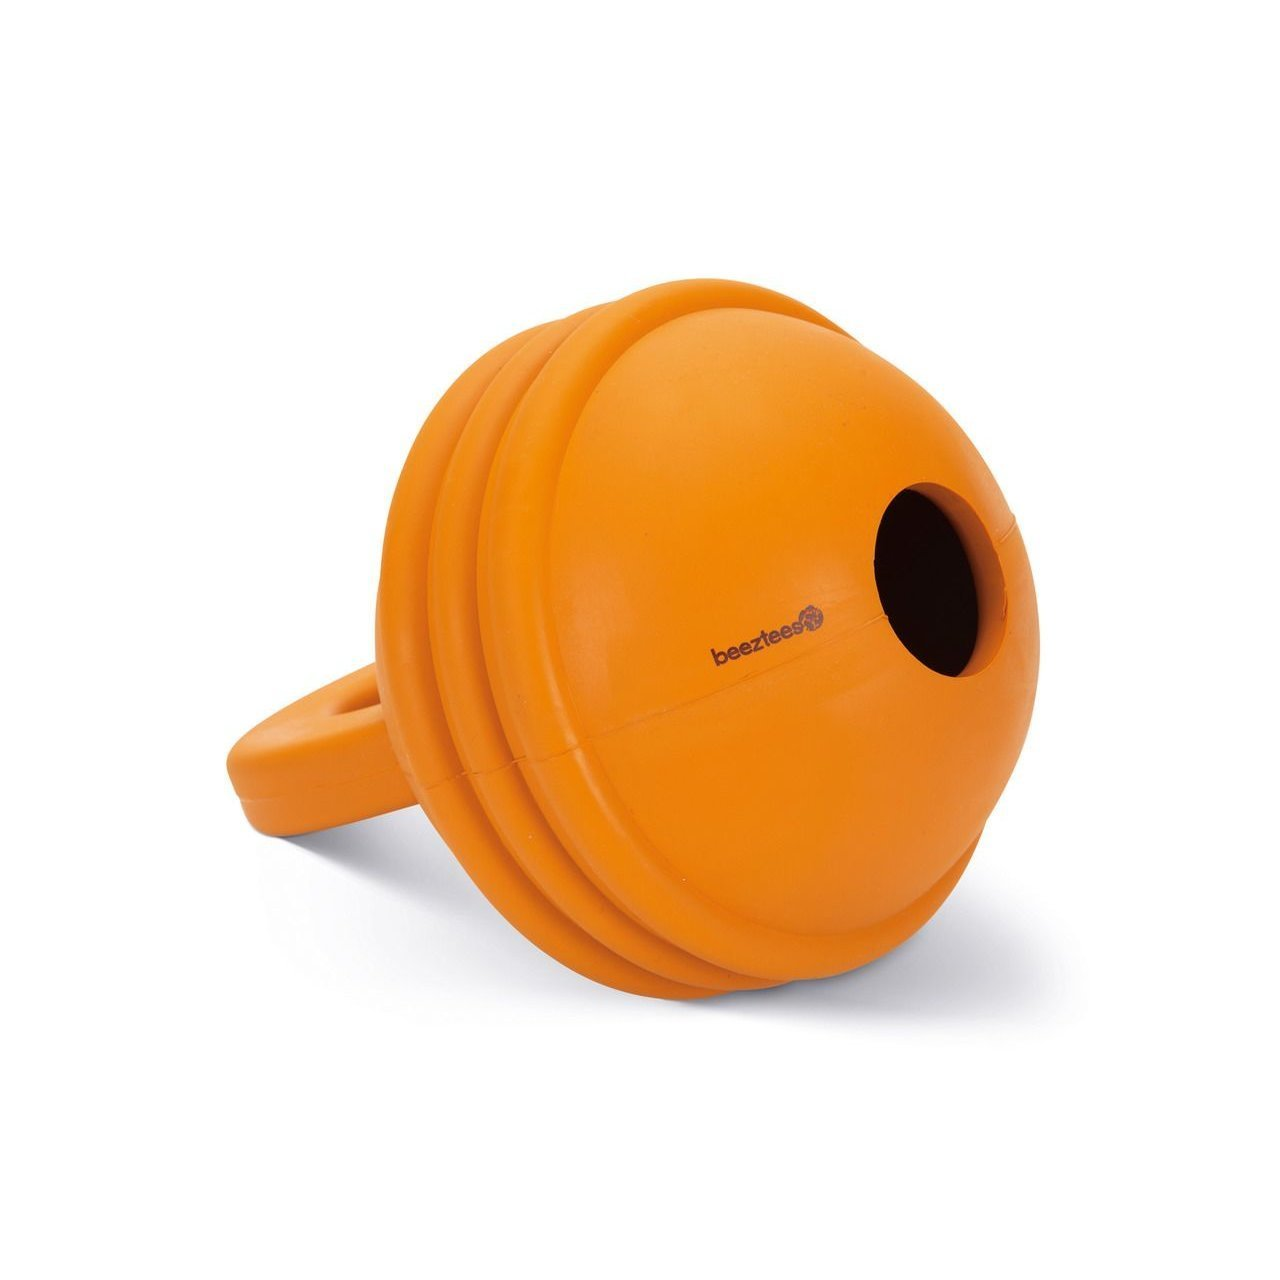 Beeztees Sumo Play Kettlebell, 16 x 12 x 12 cm, orange